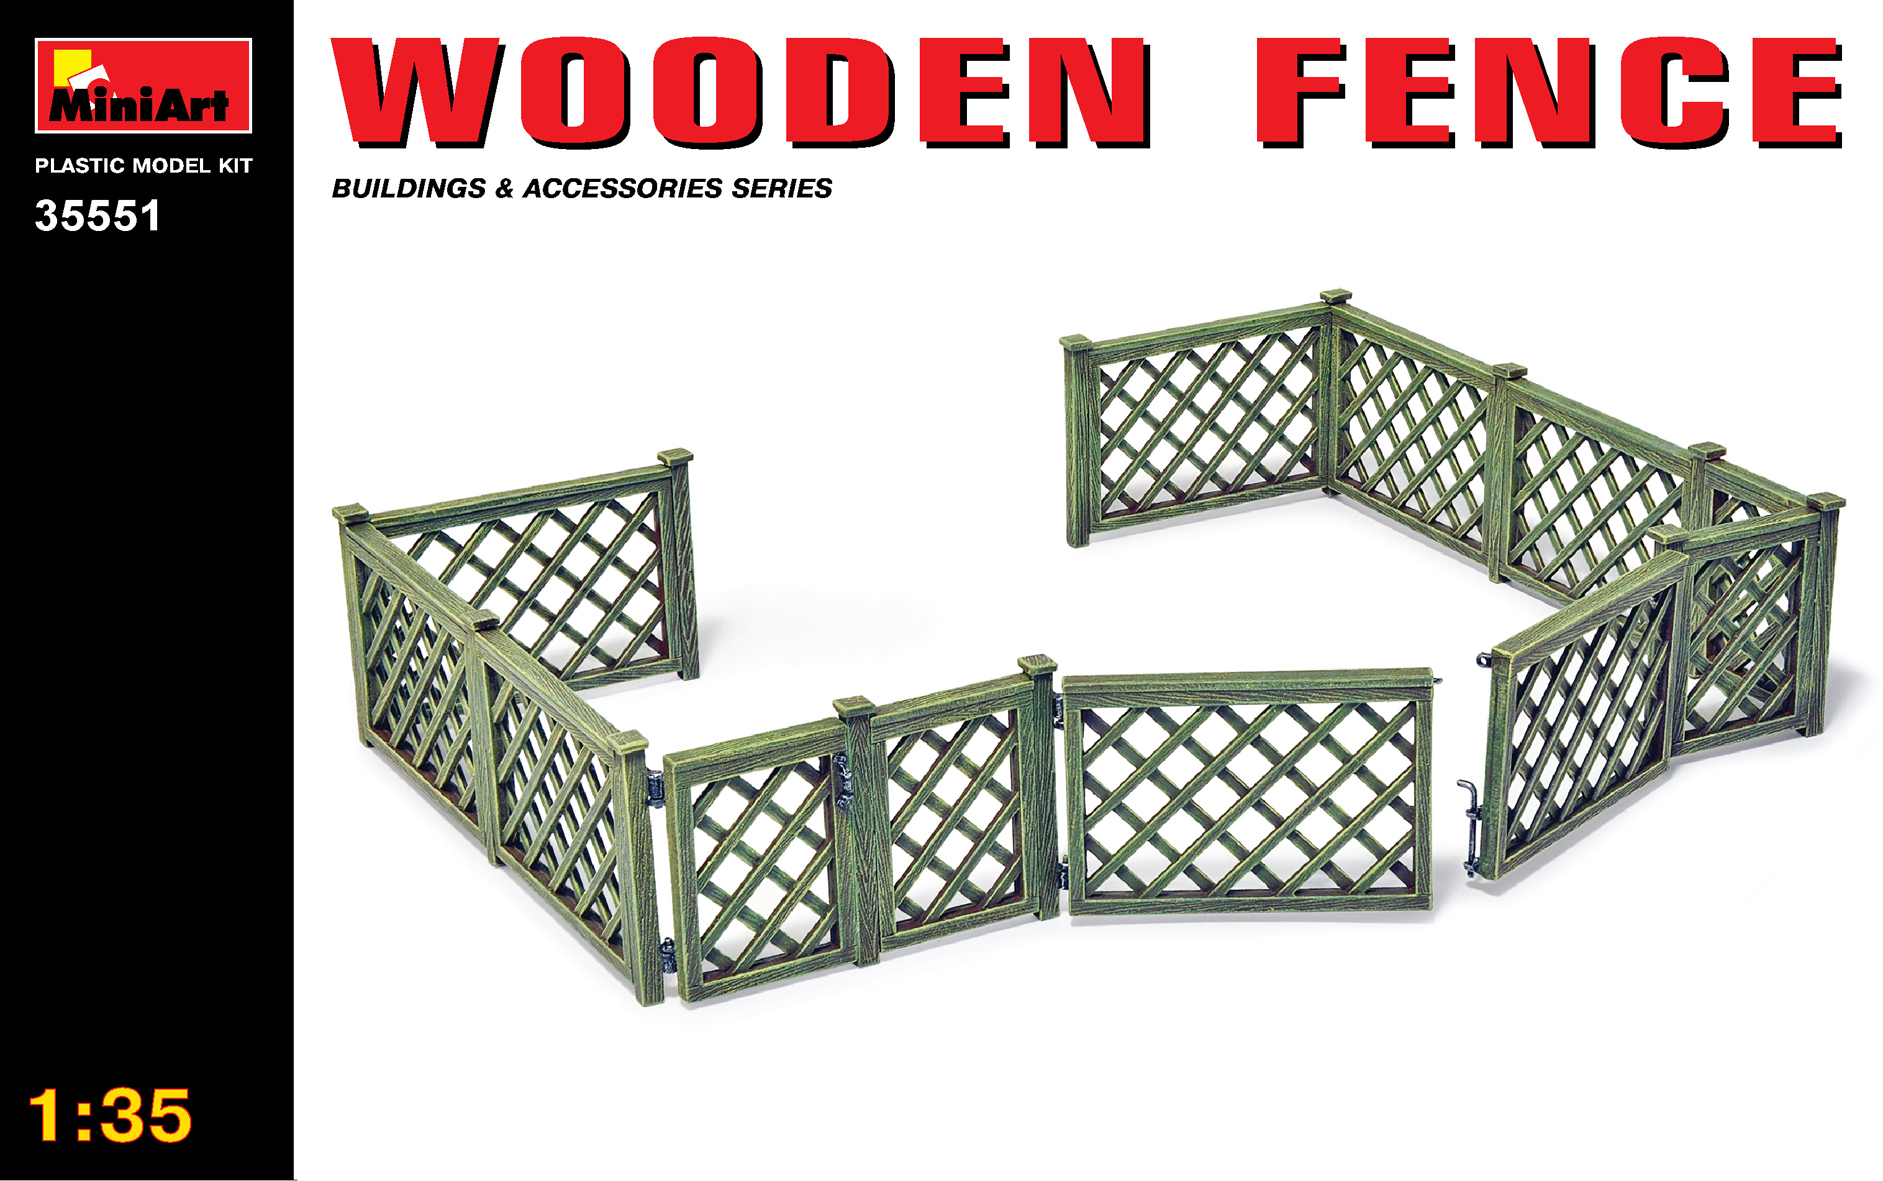 35551 WOODEN FENCE